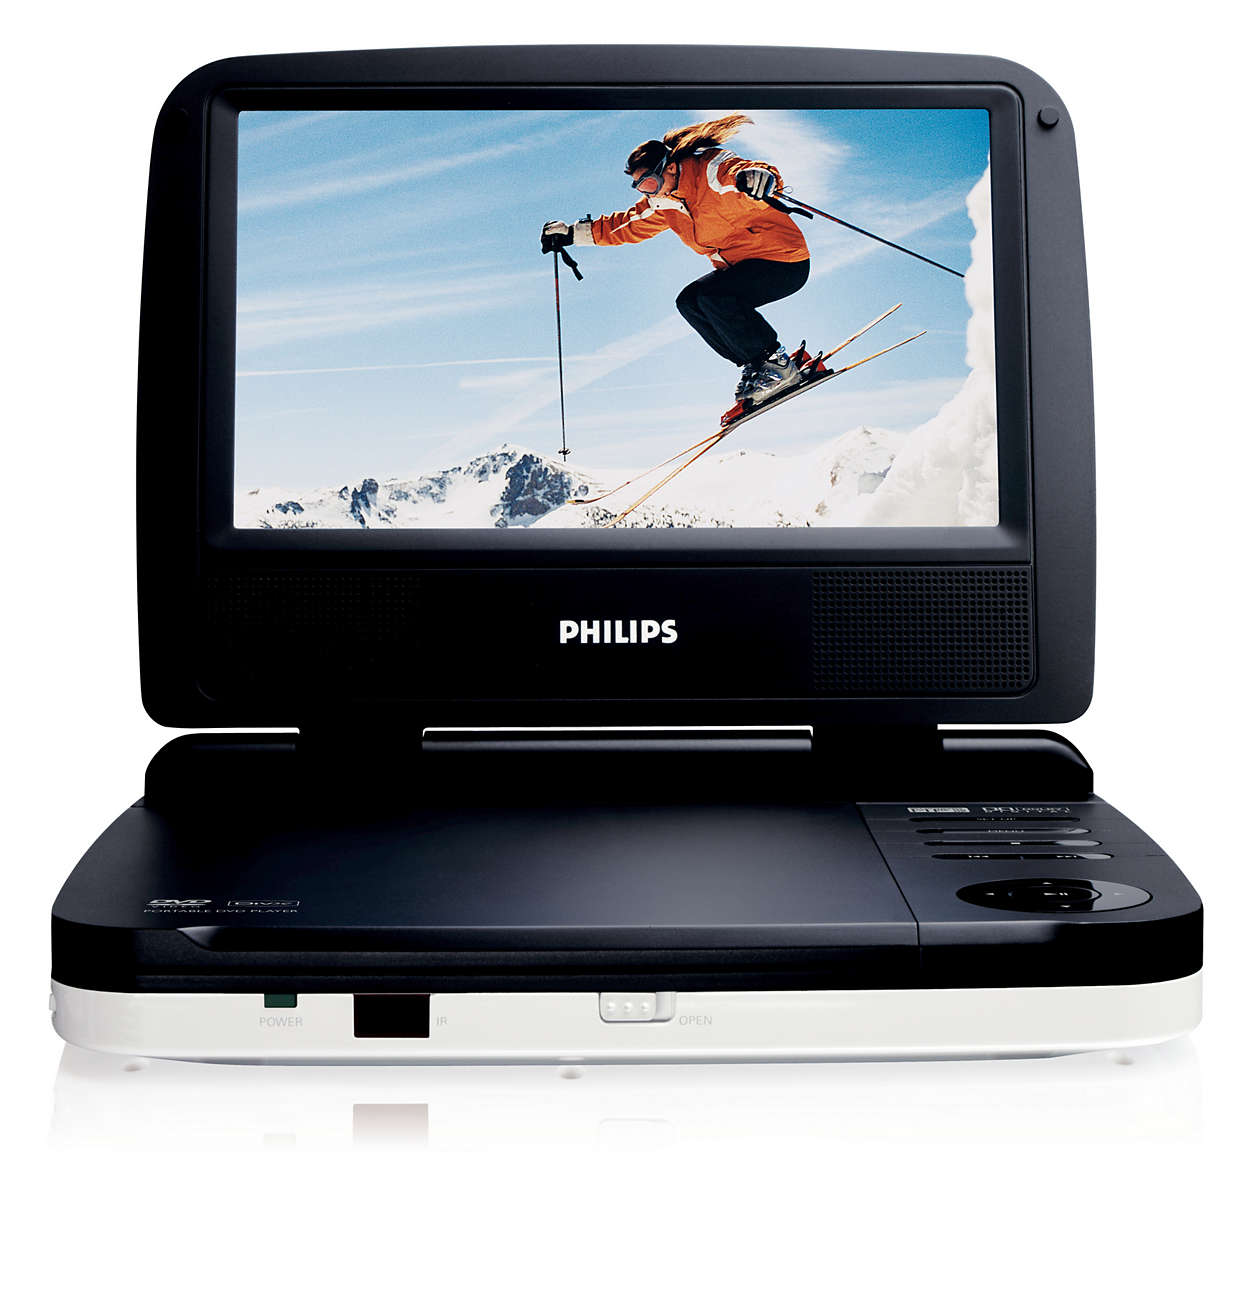 portable dvd player pet702 37 philips. Black Bedroom Furniture Sets. Home Design Ideas